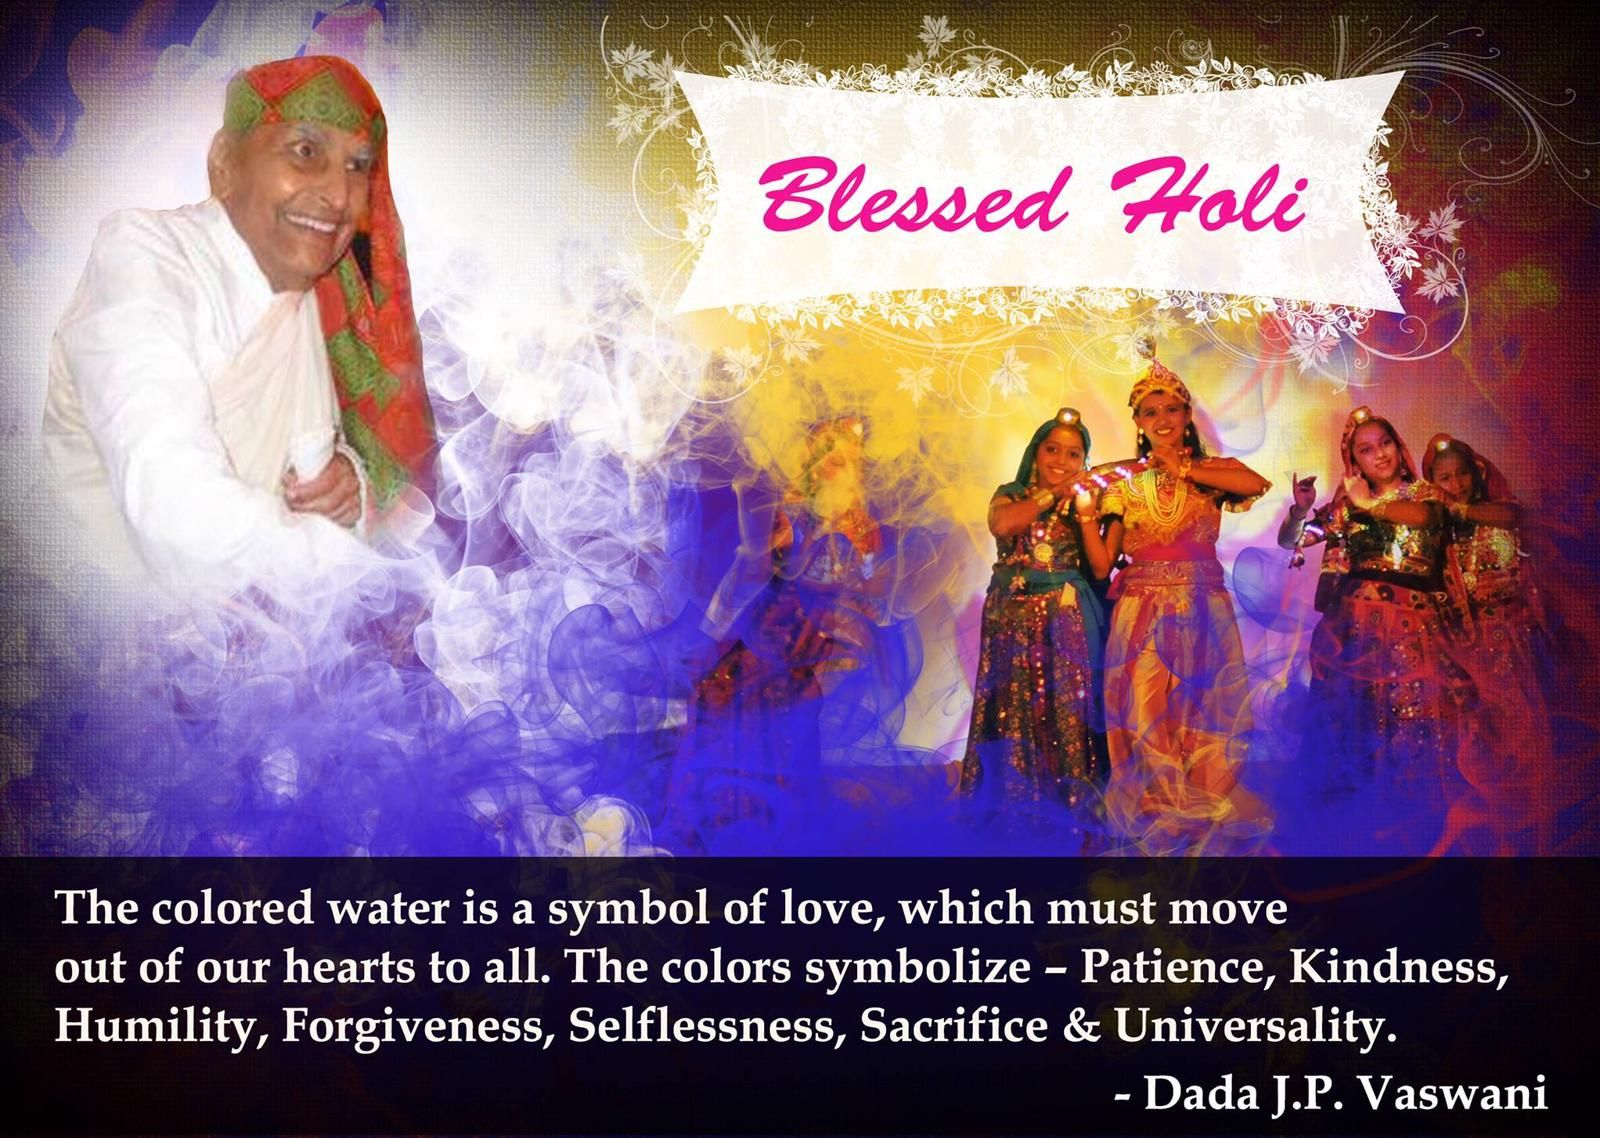 The colored water is a symbol of love, which must move out of our hearts to all. The colors symbolize -patience, kindness, humility, forgiveness, selflessness, sacrifice, and universality   #blessedholi #happyholi #holihai #pyaarkarang #patience #love #kindness #humility #forgiveness #selflessness #sacrifice #universality #colour #colors #Holi #holi2020 #happyholi2020 #holifestival #holifest #color